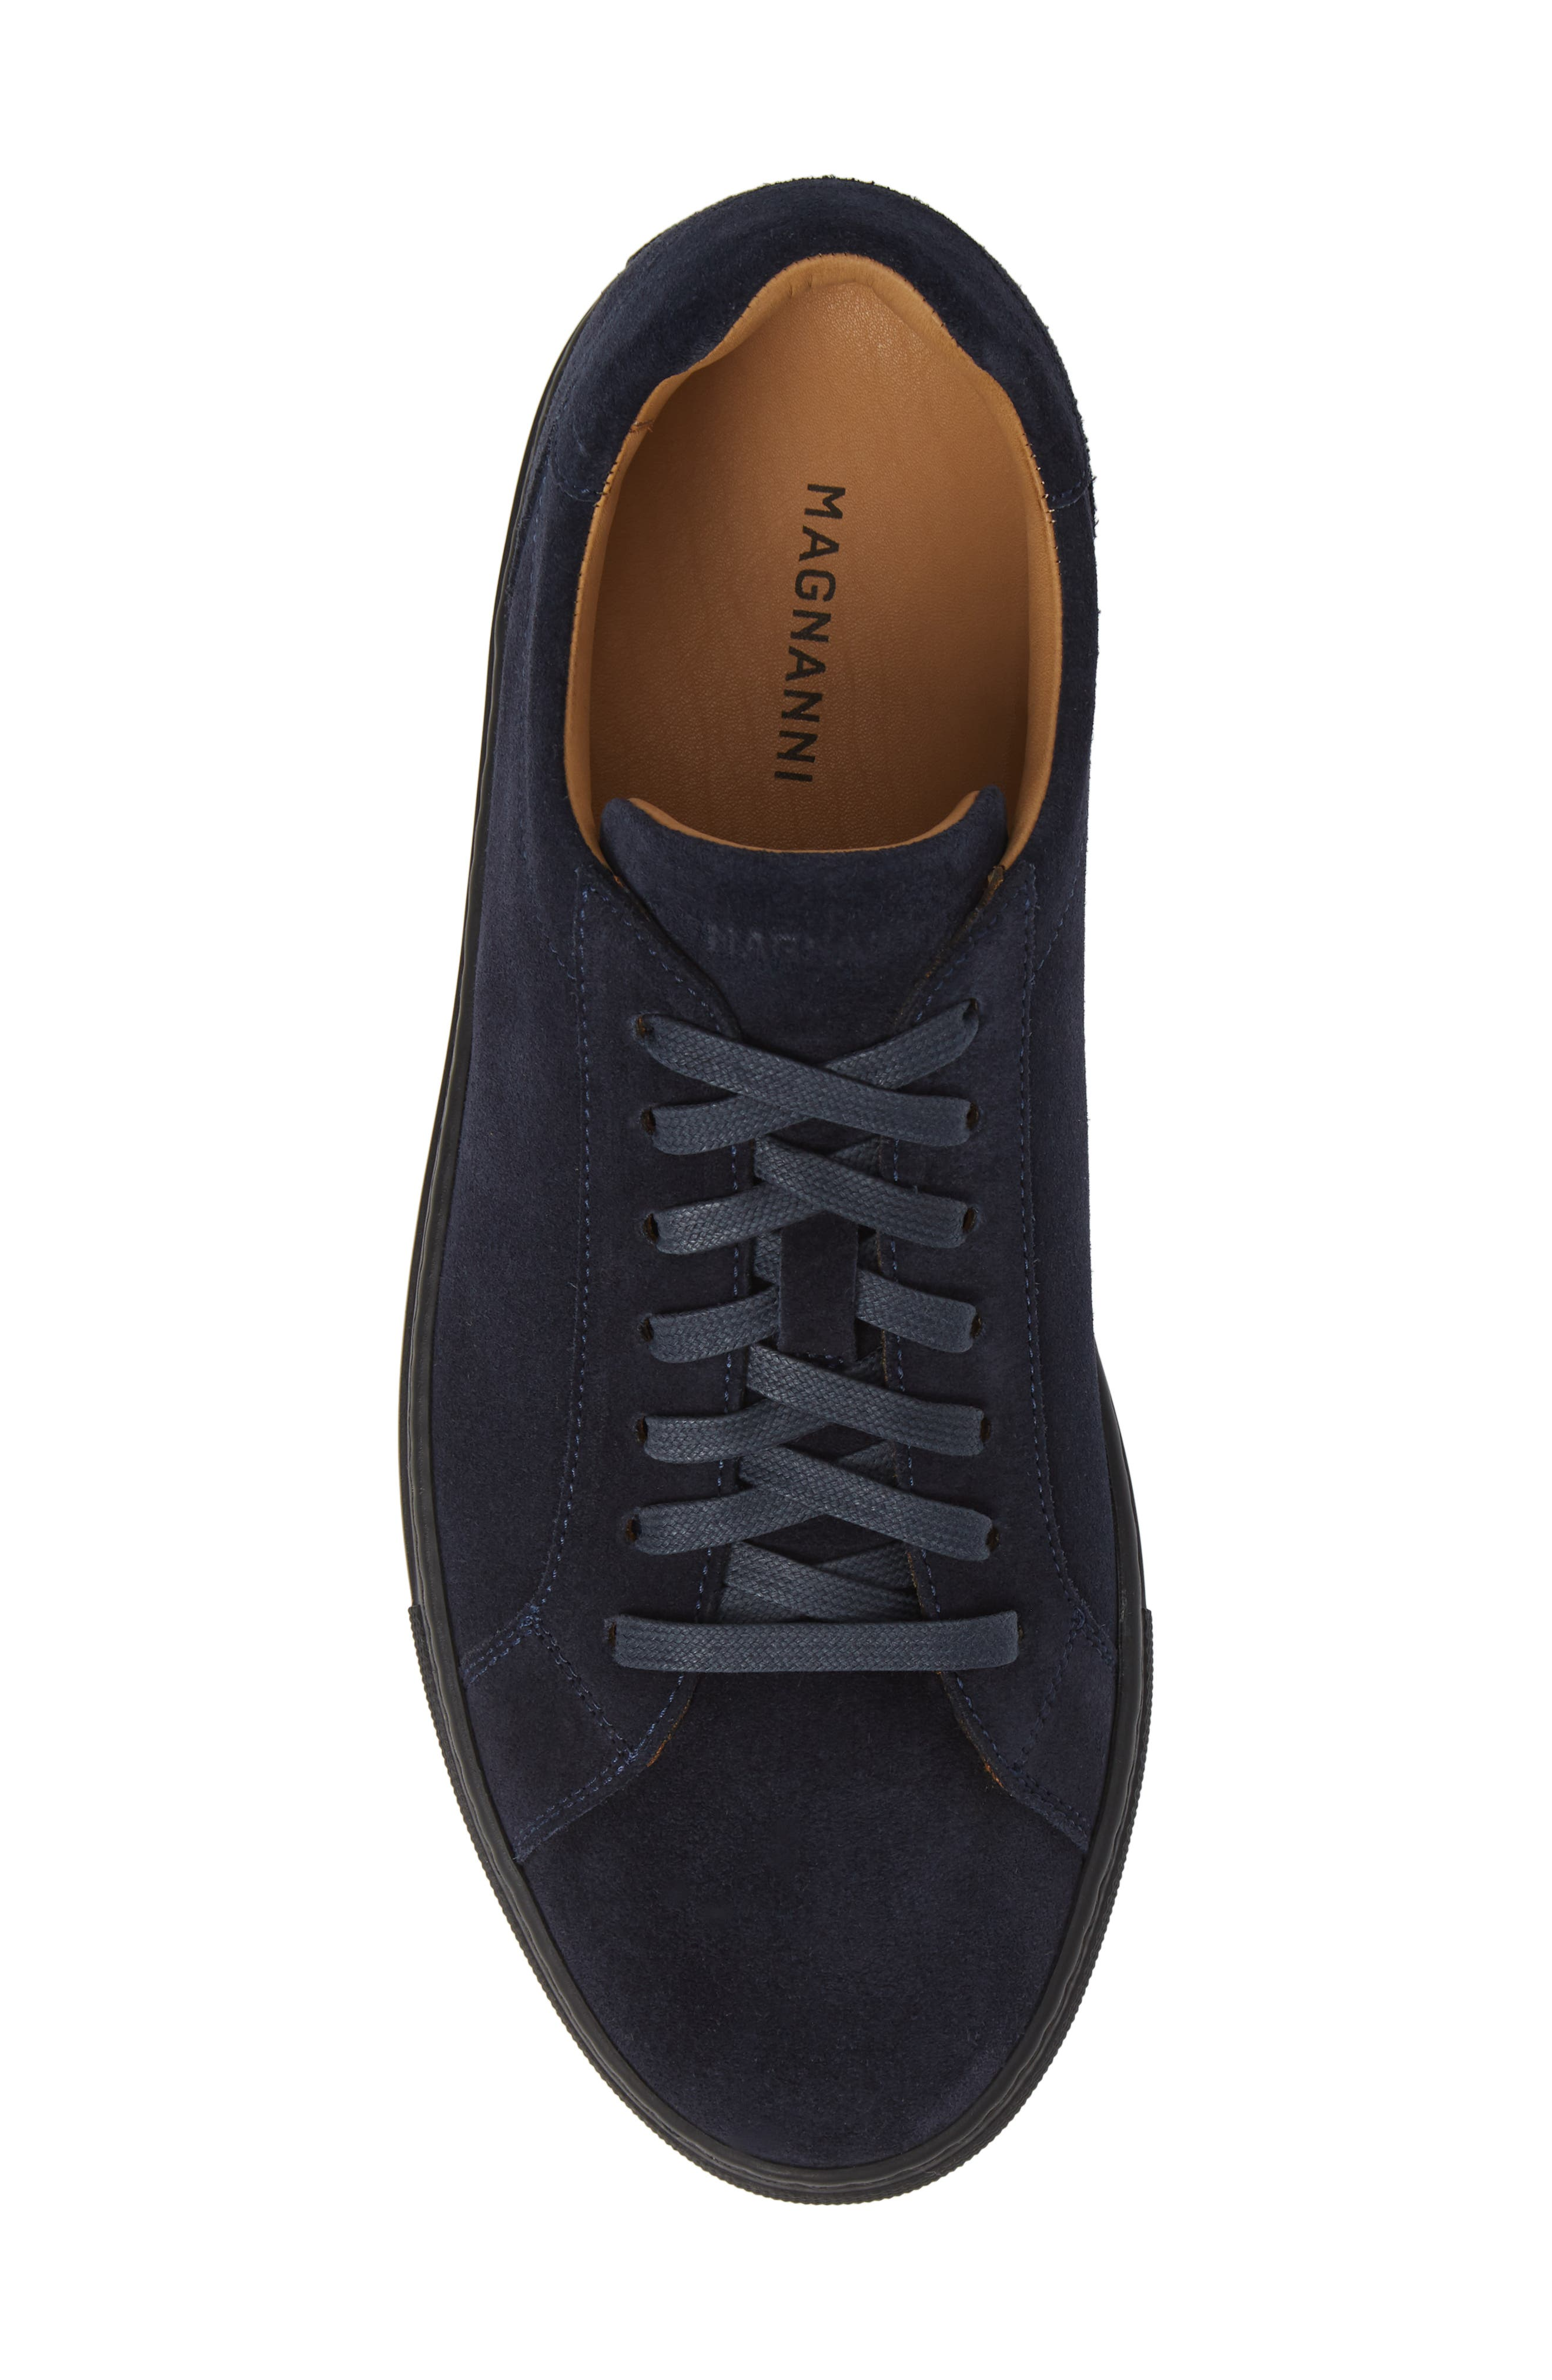 Fede Sneaker,                             Alternate thumbnail 5, color,                             NAVY SUEDE/ LEATHER